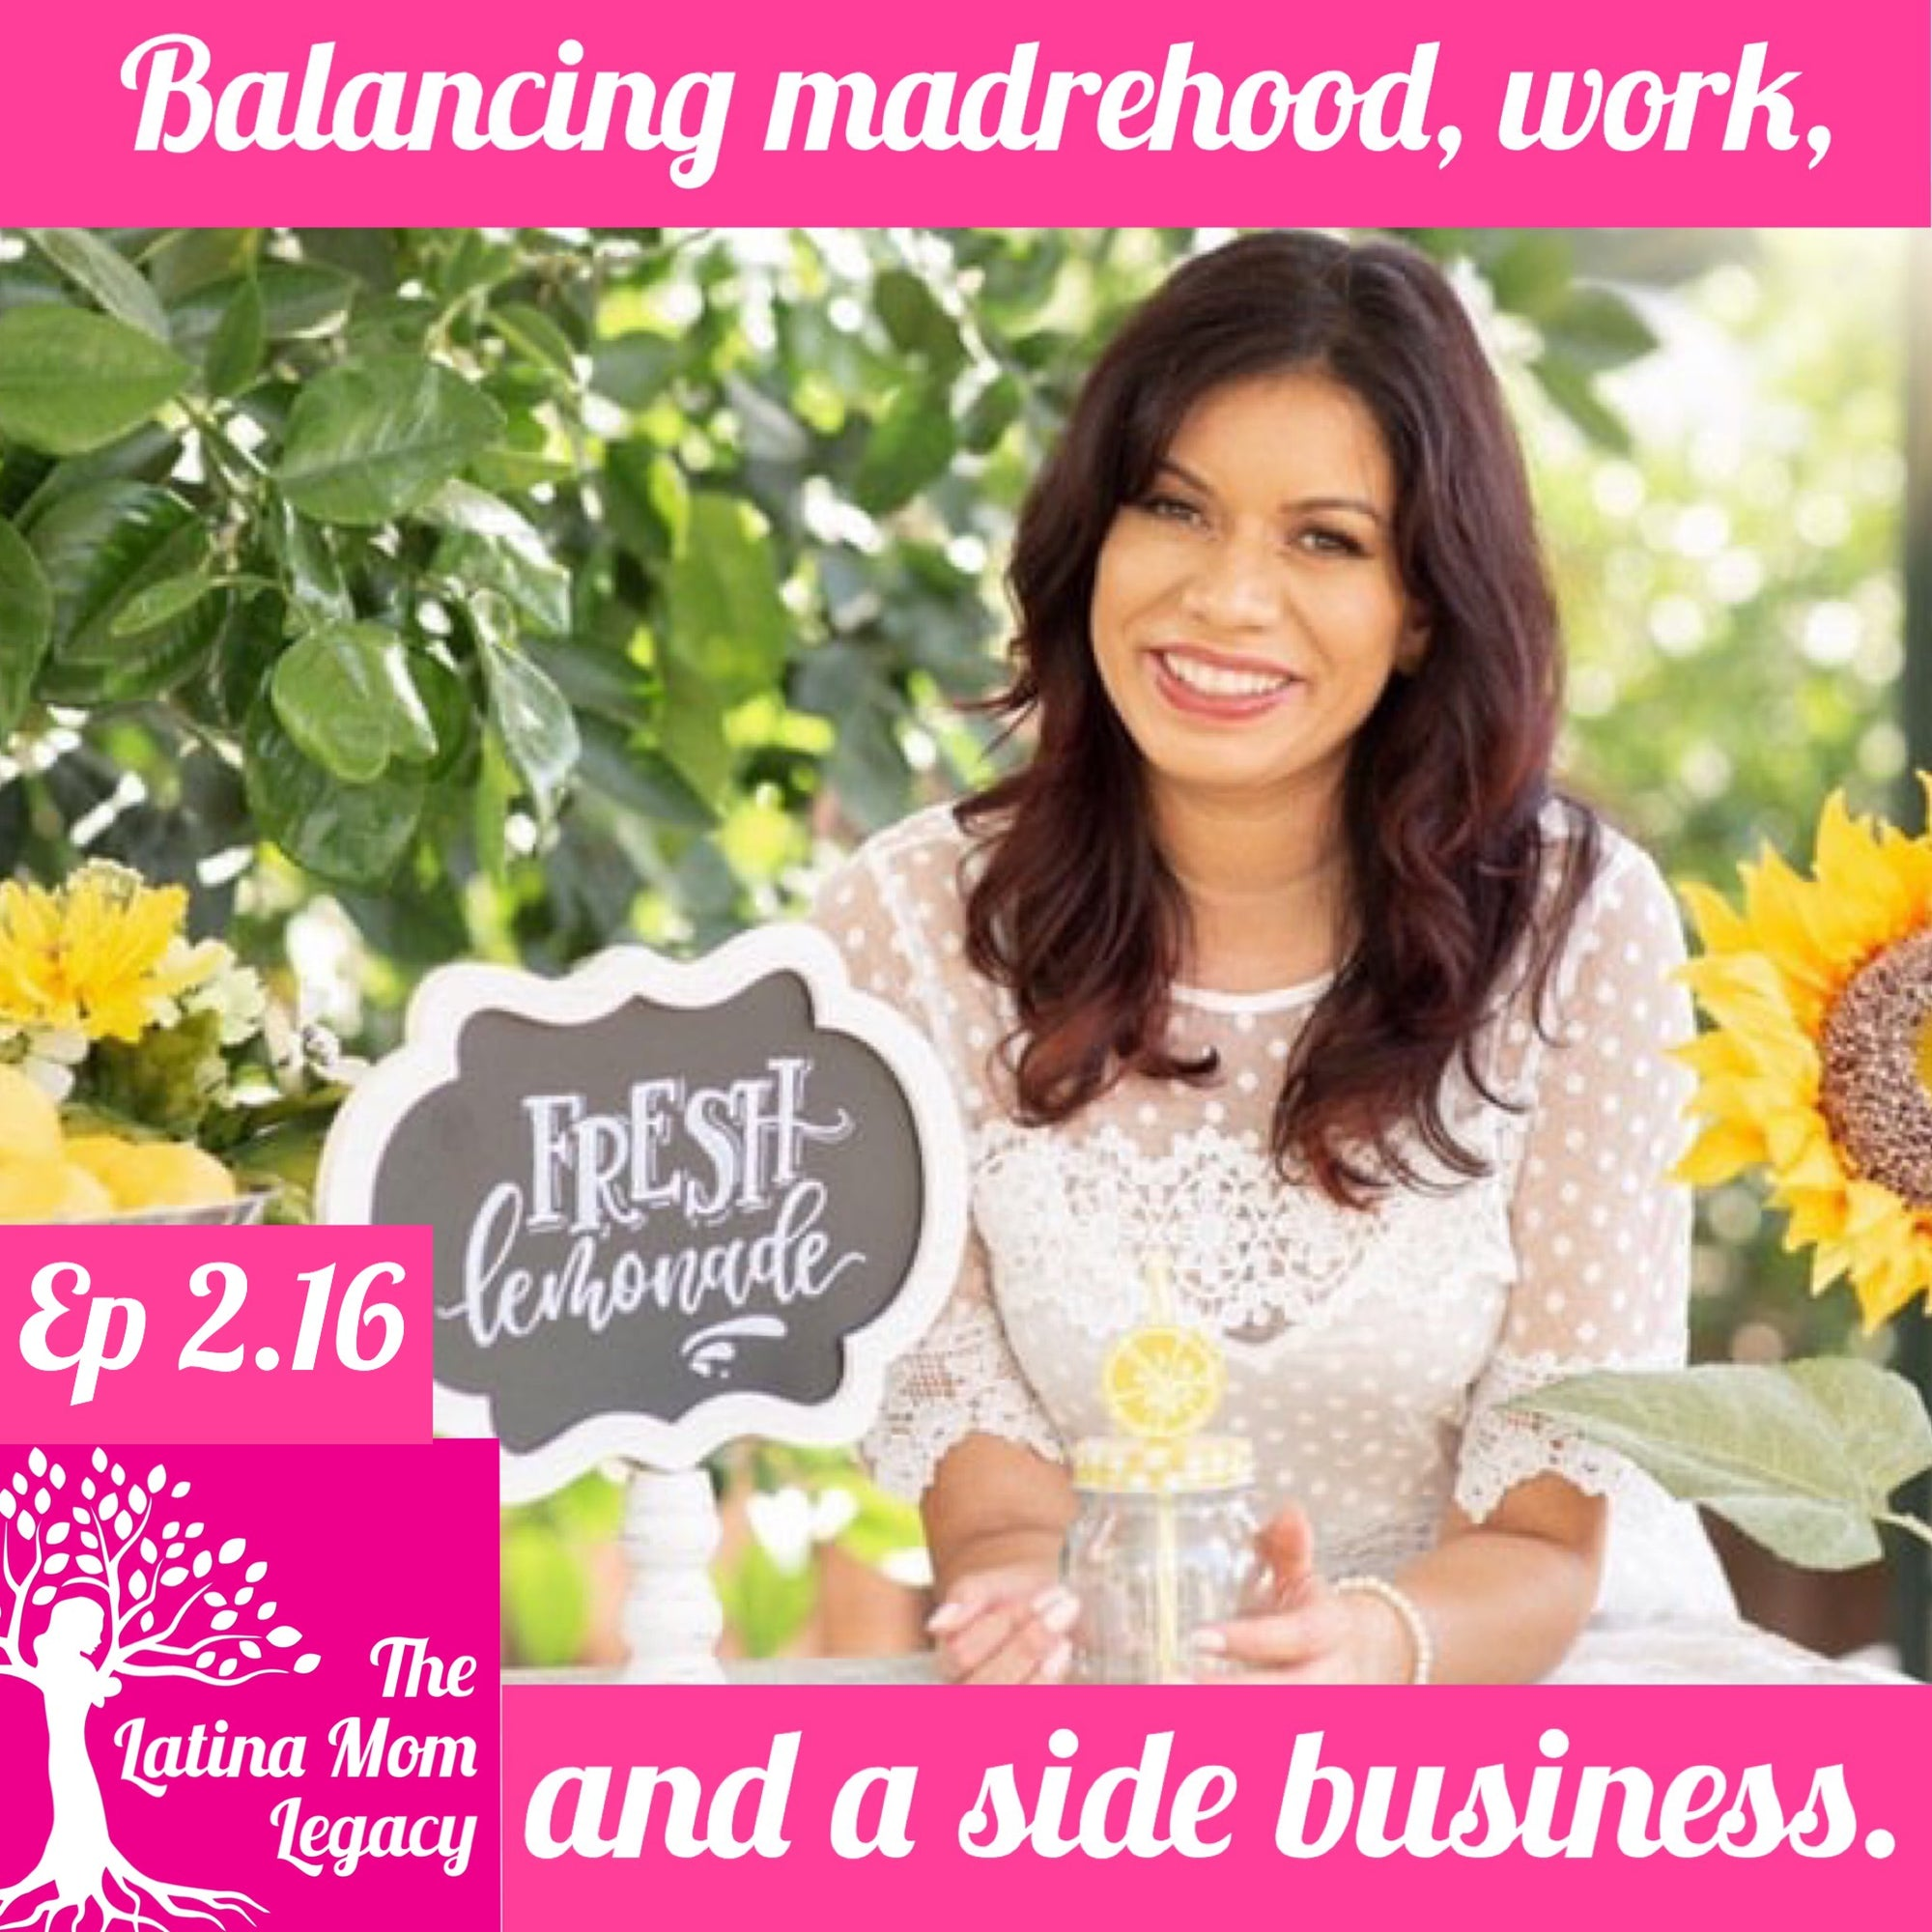 2.16 - Jenny T. Biggers - Balancing madrehood, work, and a side hustle. - The Latina Mom Legacy Podcast